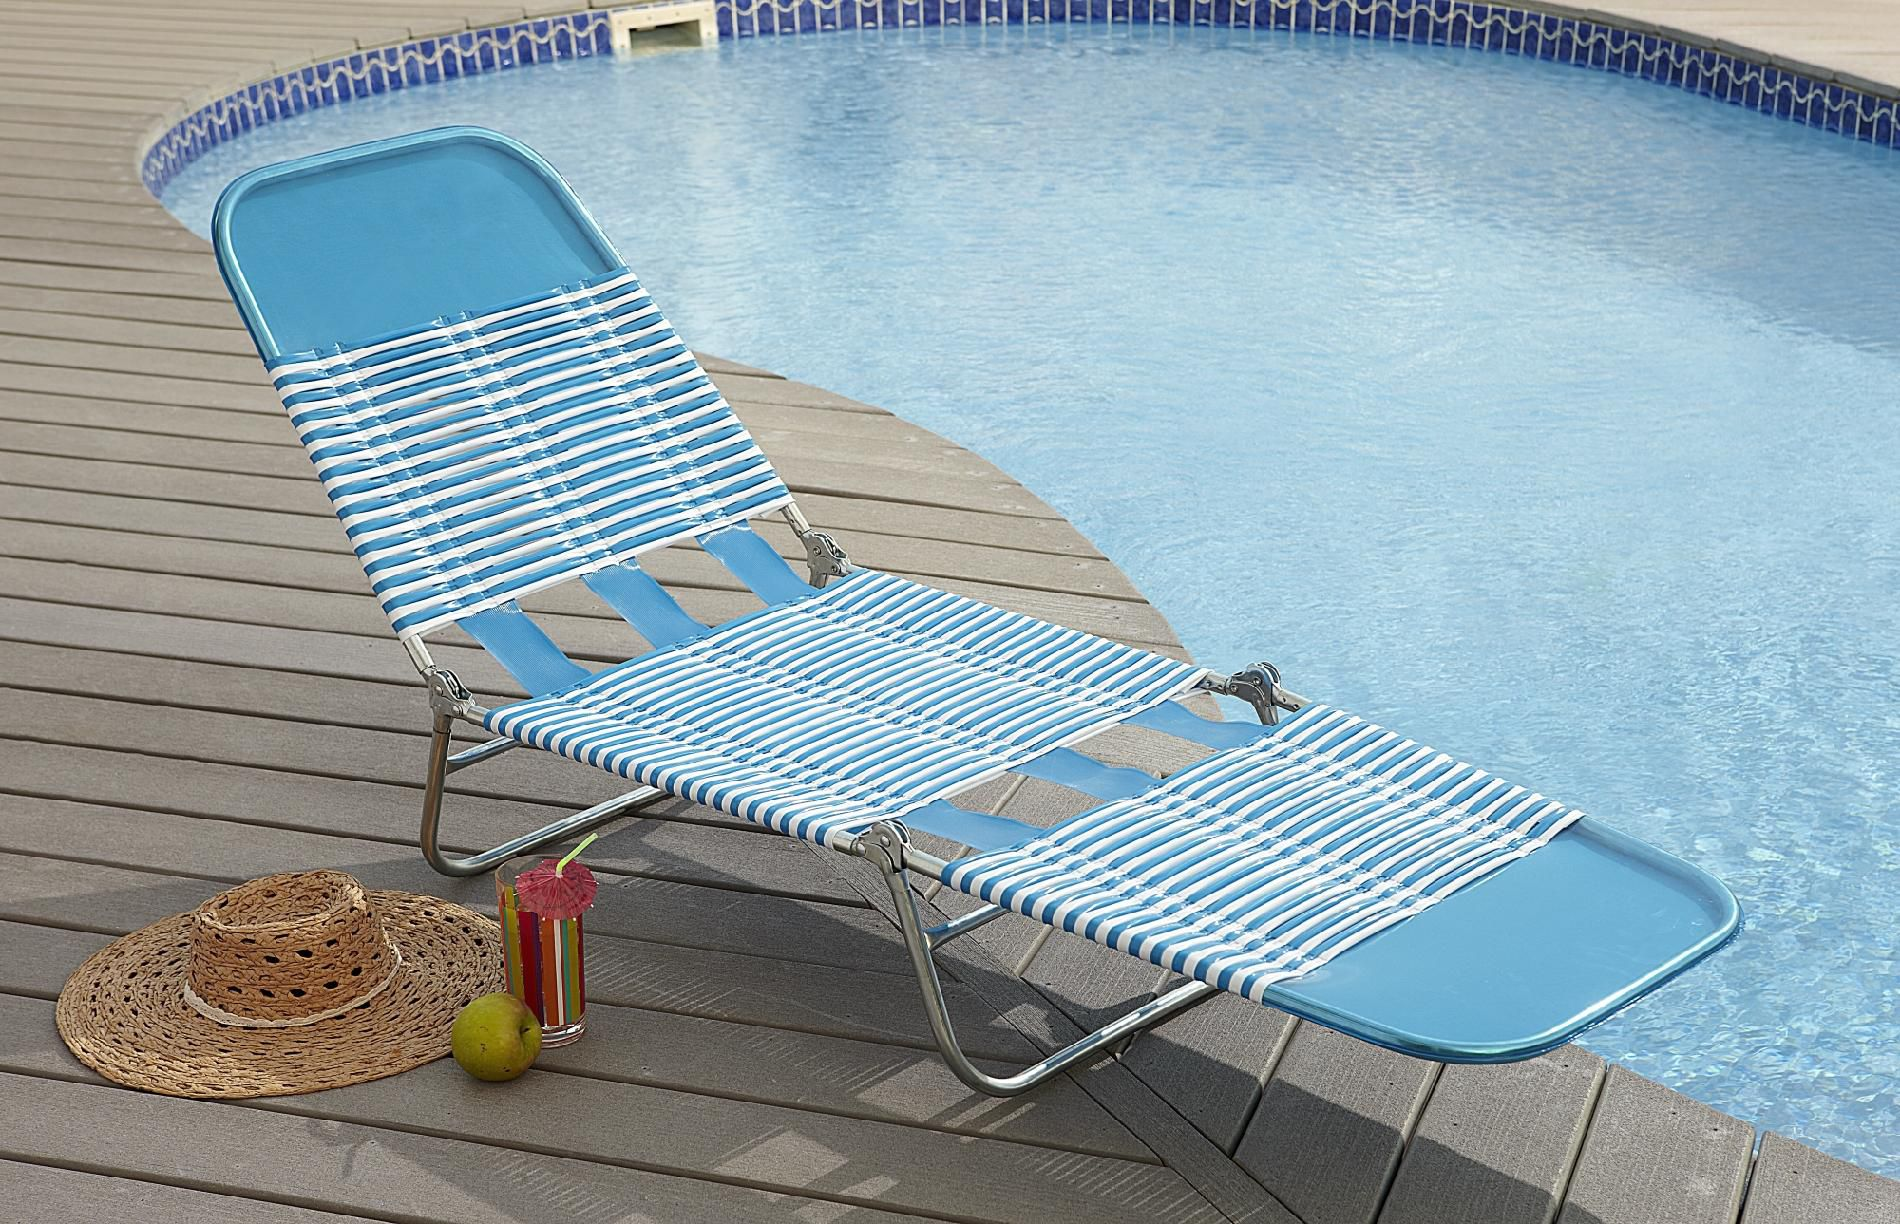 Garden Oasis Pvc Chaise Lounge - Blue Outdoor Living